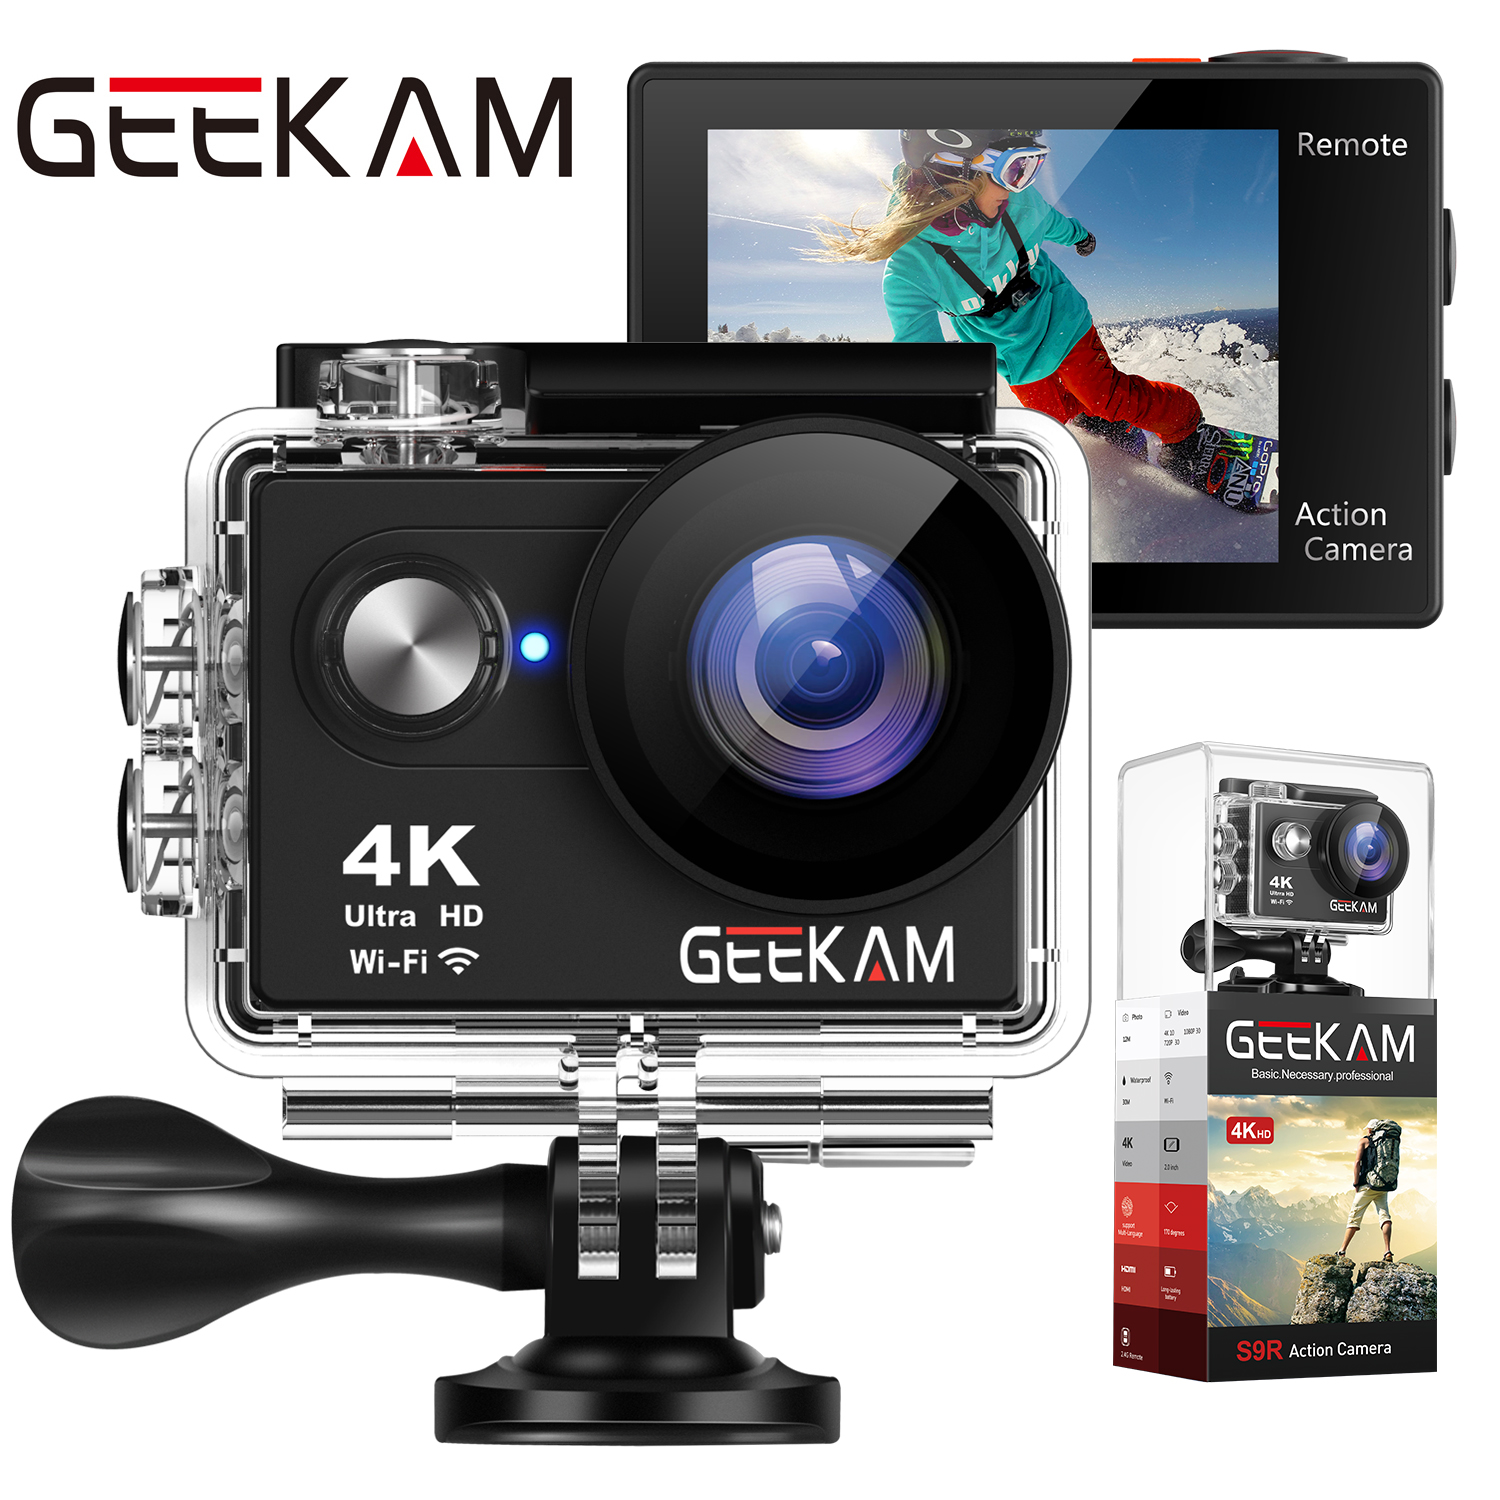 "GEEKAM S9R/S9 Action Camera Ultra HD 4K/10fps WiFi 2.0"" Underwater Waterproof Helmet Video Recording Cameras Sport Cam-in Sports & Action Video Camera from Consumer Electronics"